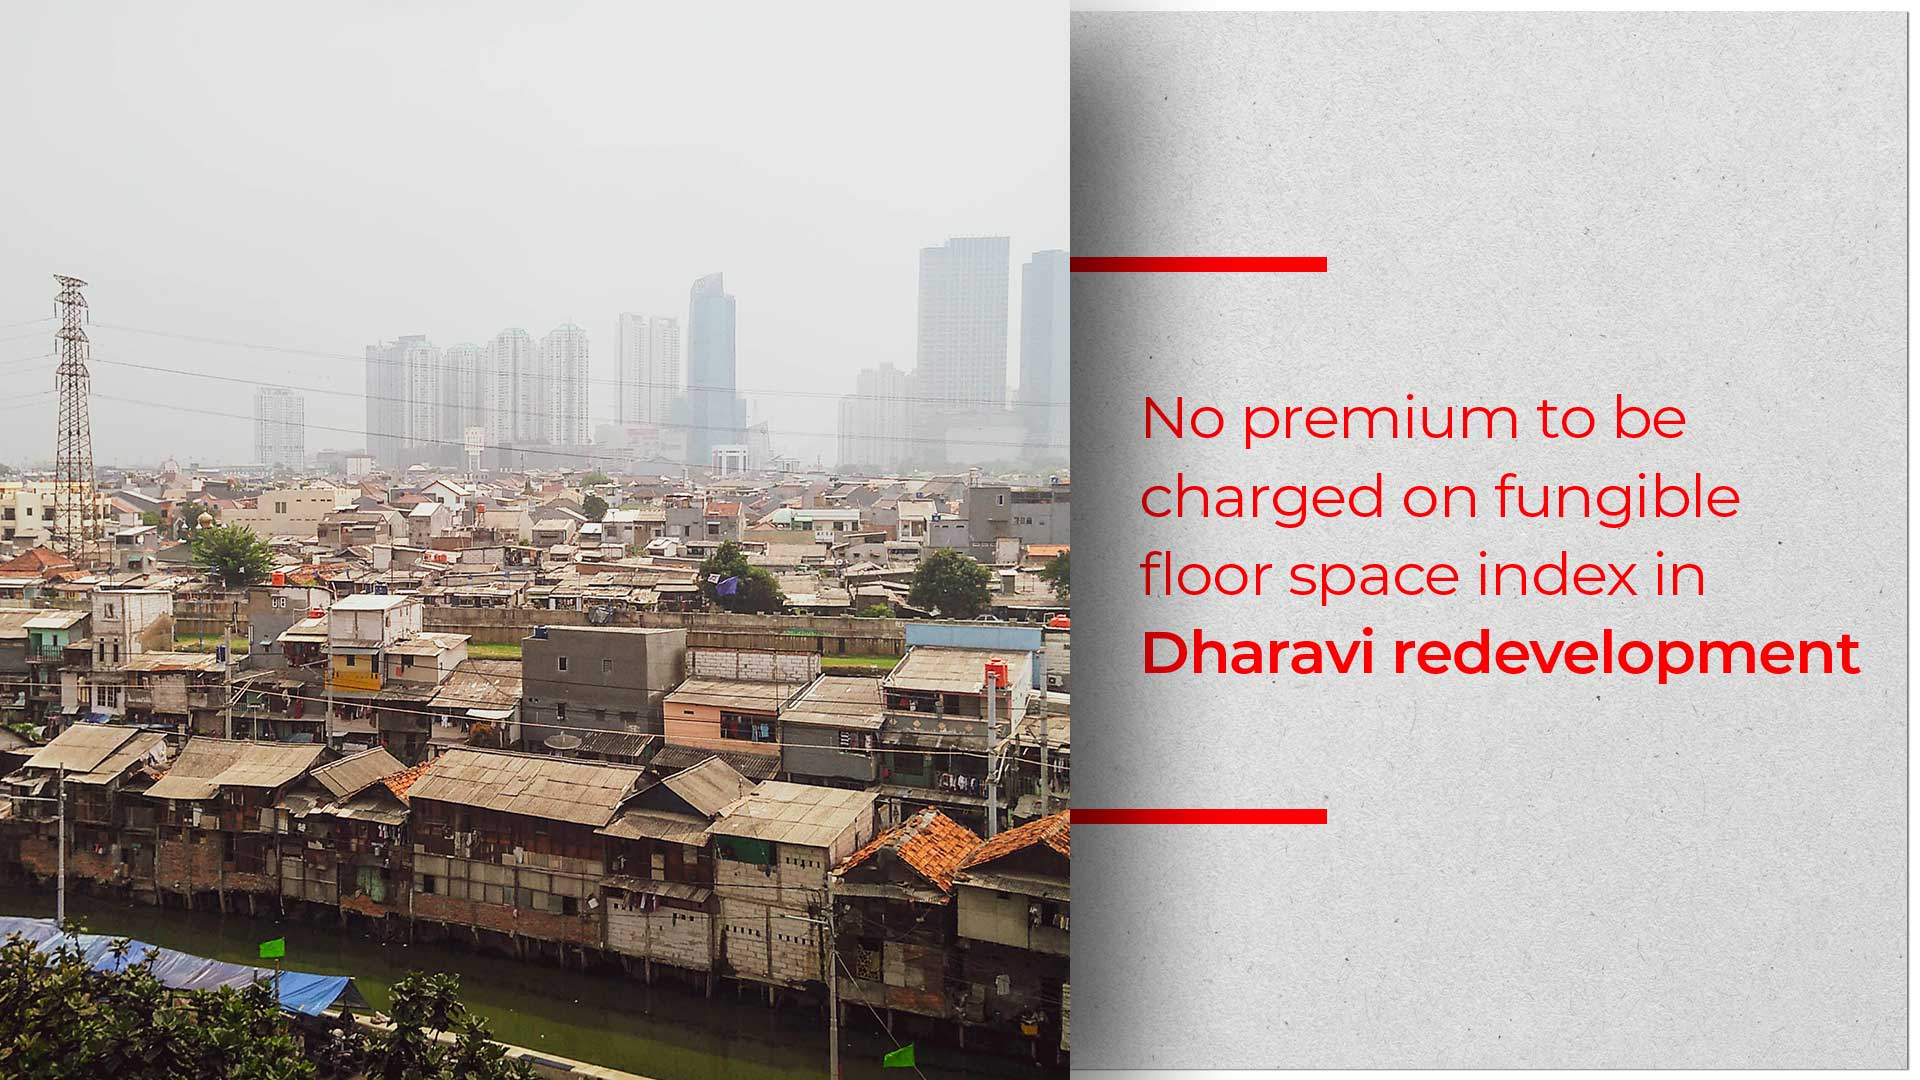 Dharavi Revamp Developers Exempted From Premium On Fungible FSI